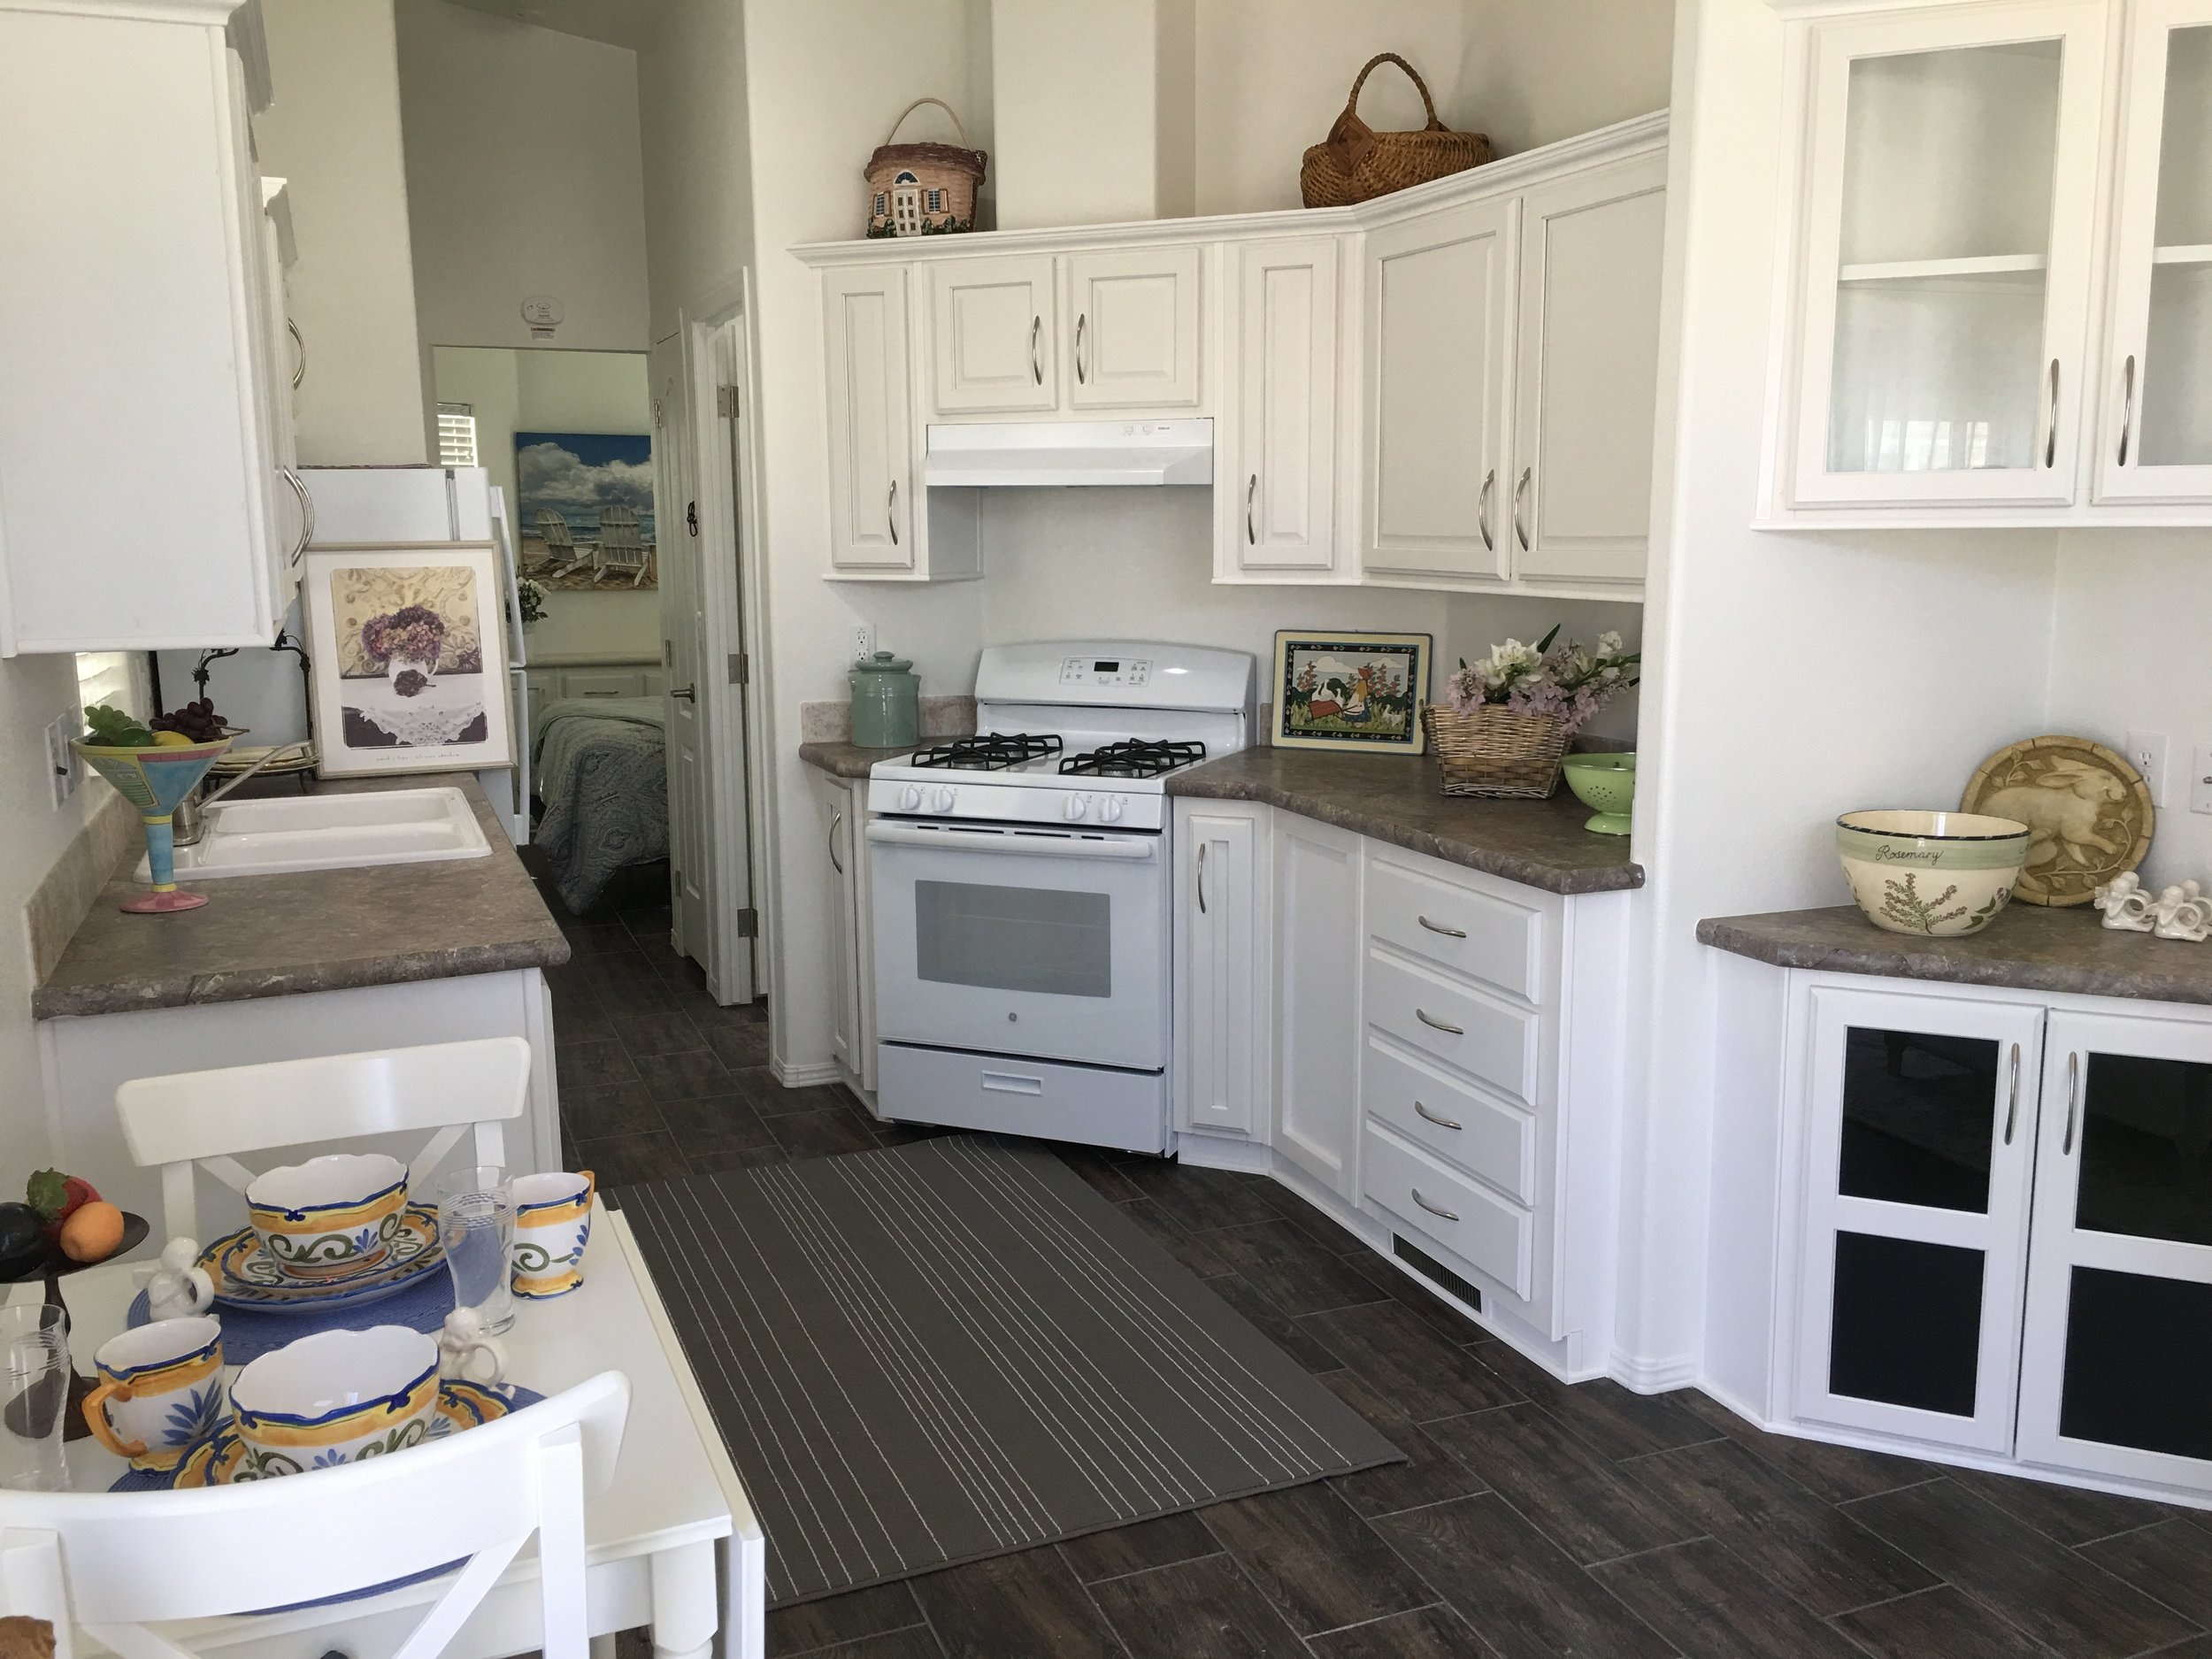 VACATION RENTAL FEATURES - Living, dining, and bedroom furnitureFlat screen TV and cableBed and bath linensFull-sized refrigeratorGas range / oven, microwave, toaster, coffee makerCooking and eating dishes and utinselsSupply of paper towels, toilet paper, trash bags, dish and hand soap.